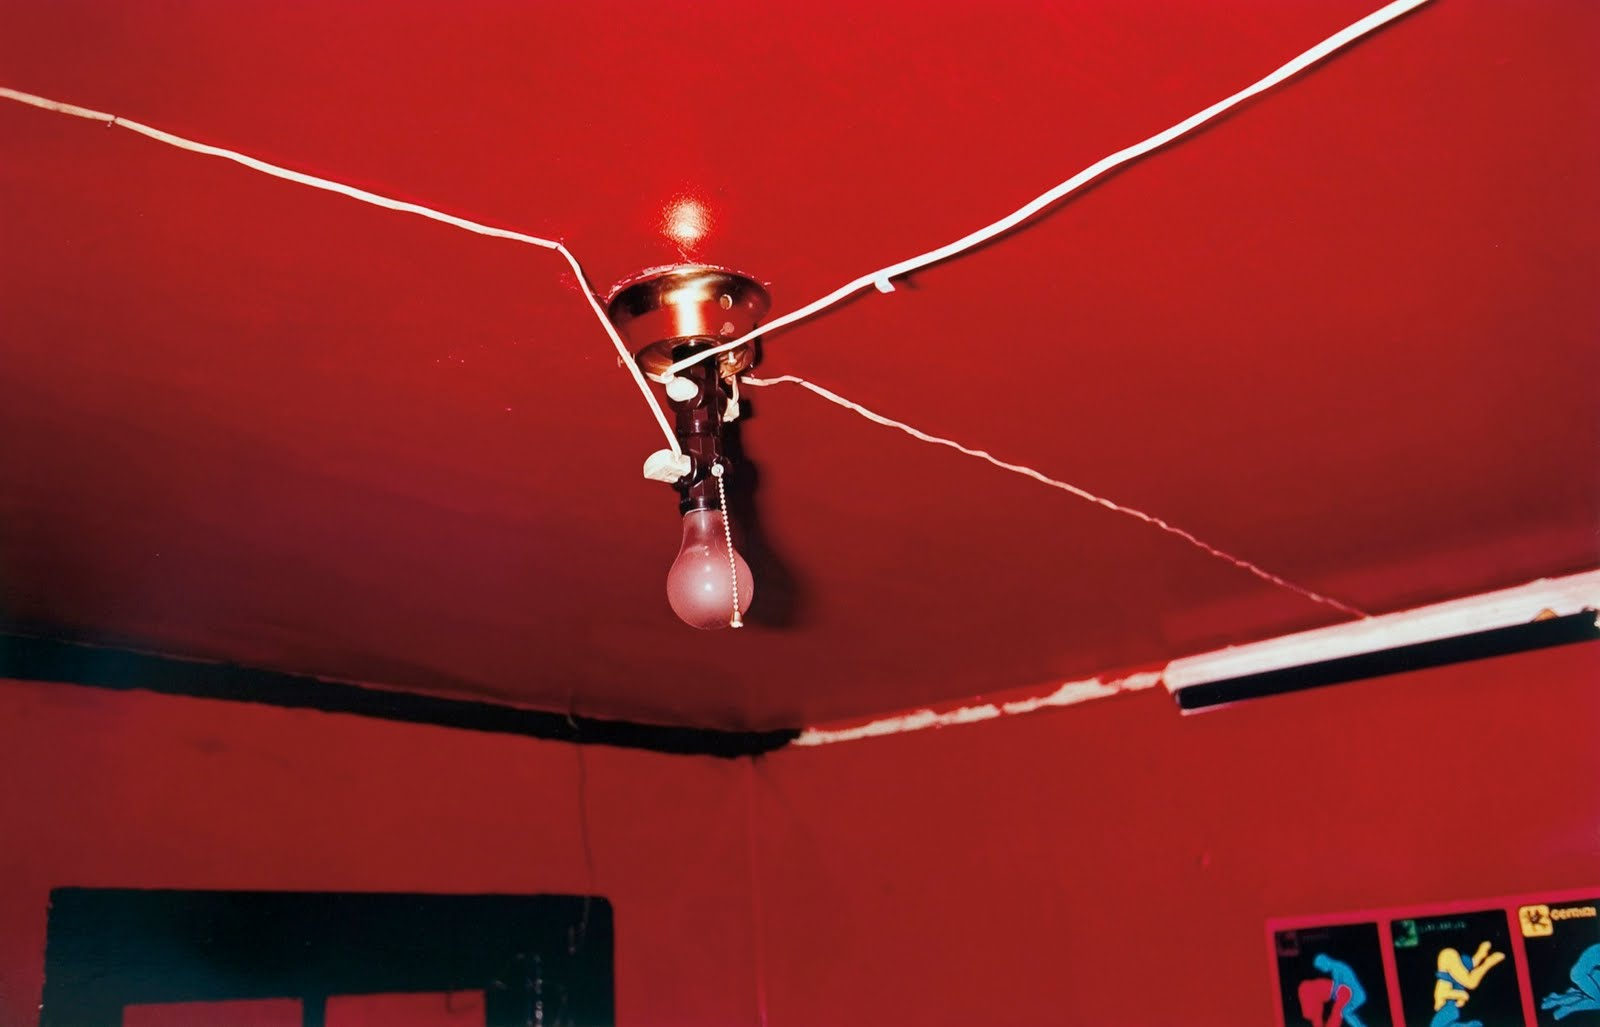 http://www.laboiteverte.fr/wp-content/uploads/2012/03/william-eggleston-01.jpg